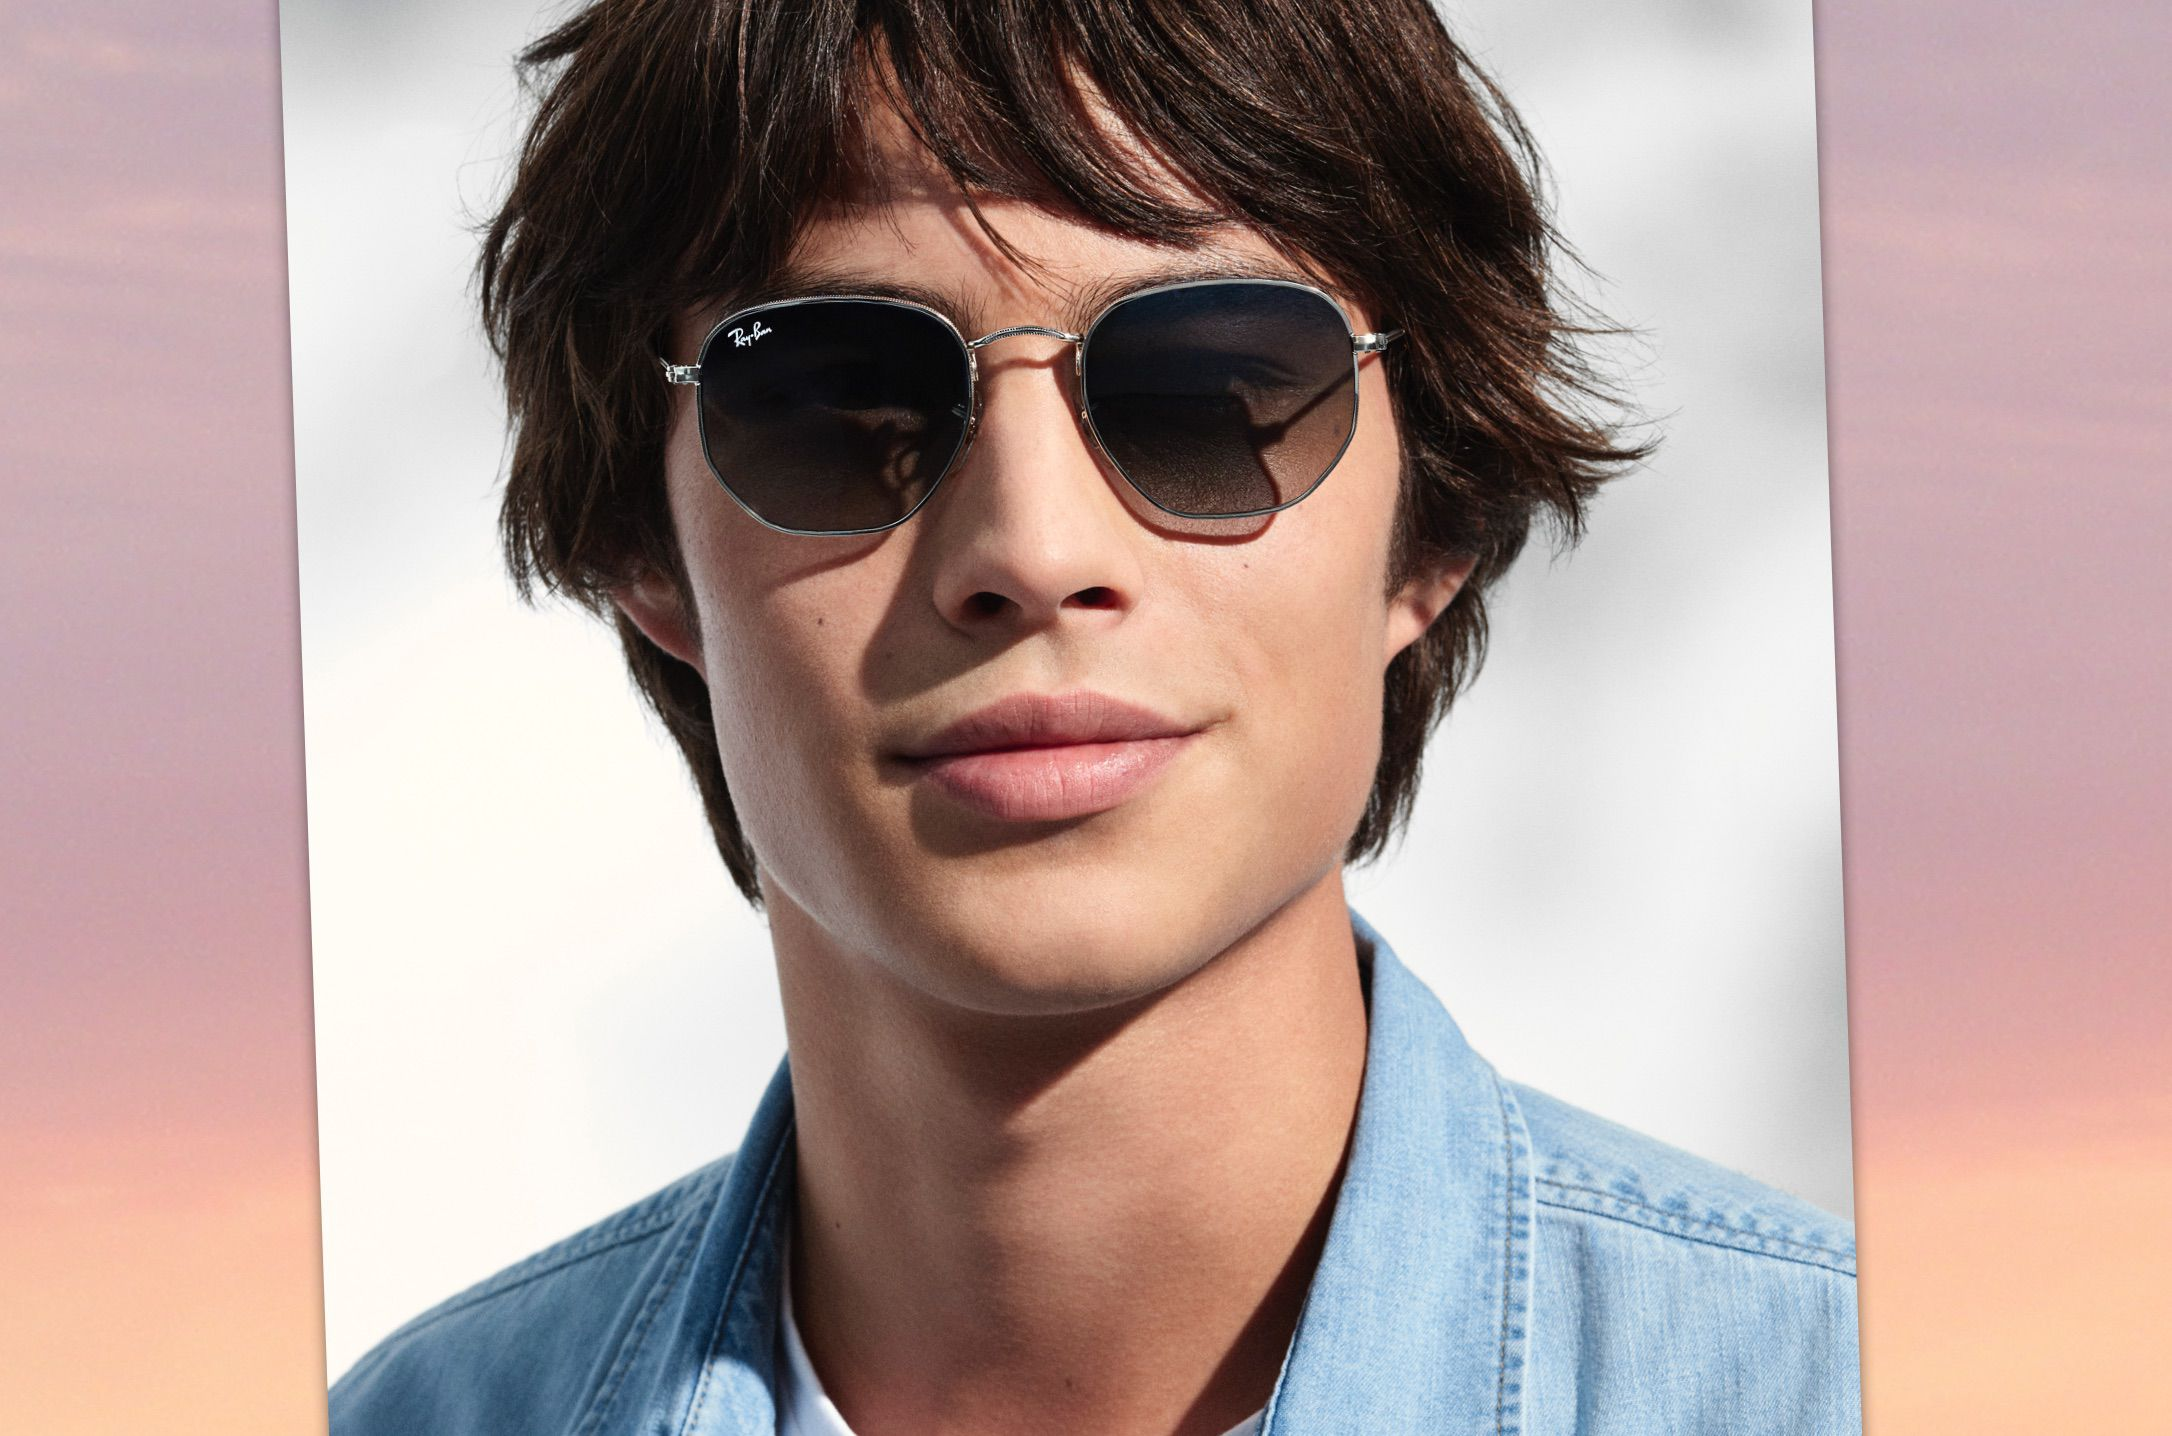 mens sunglasses 2019 trends ray ban